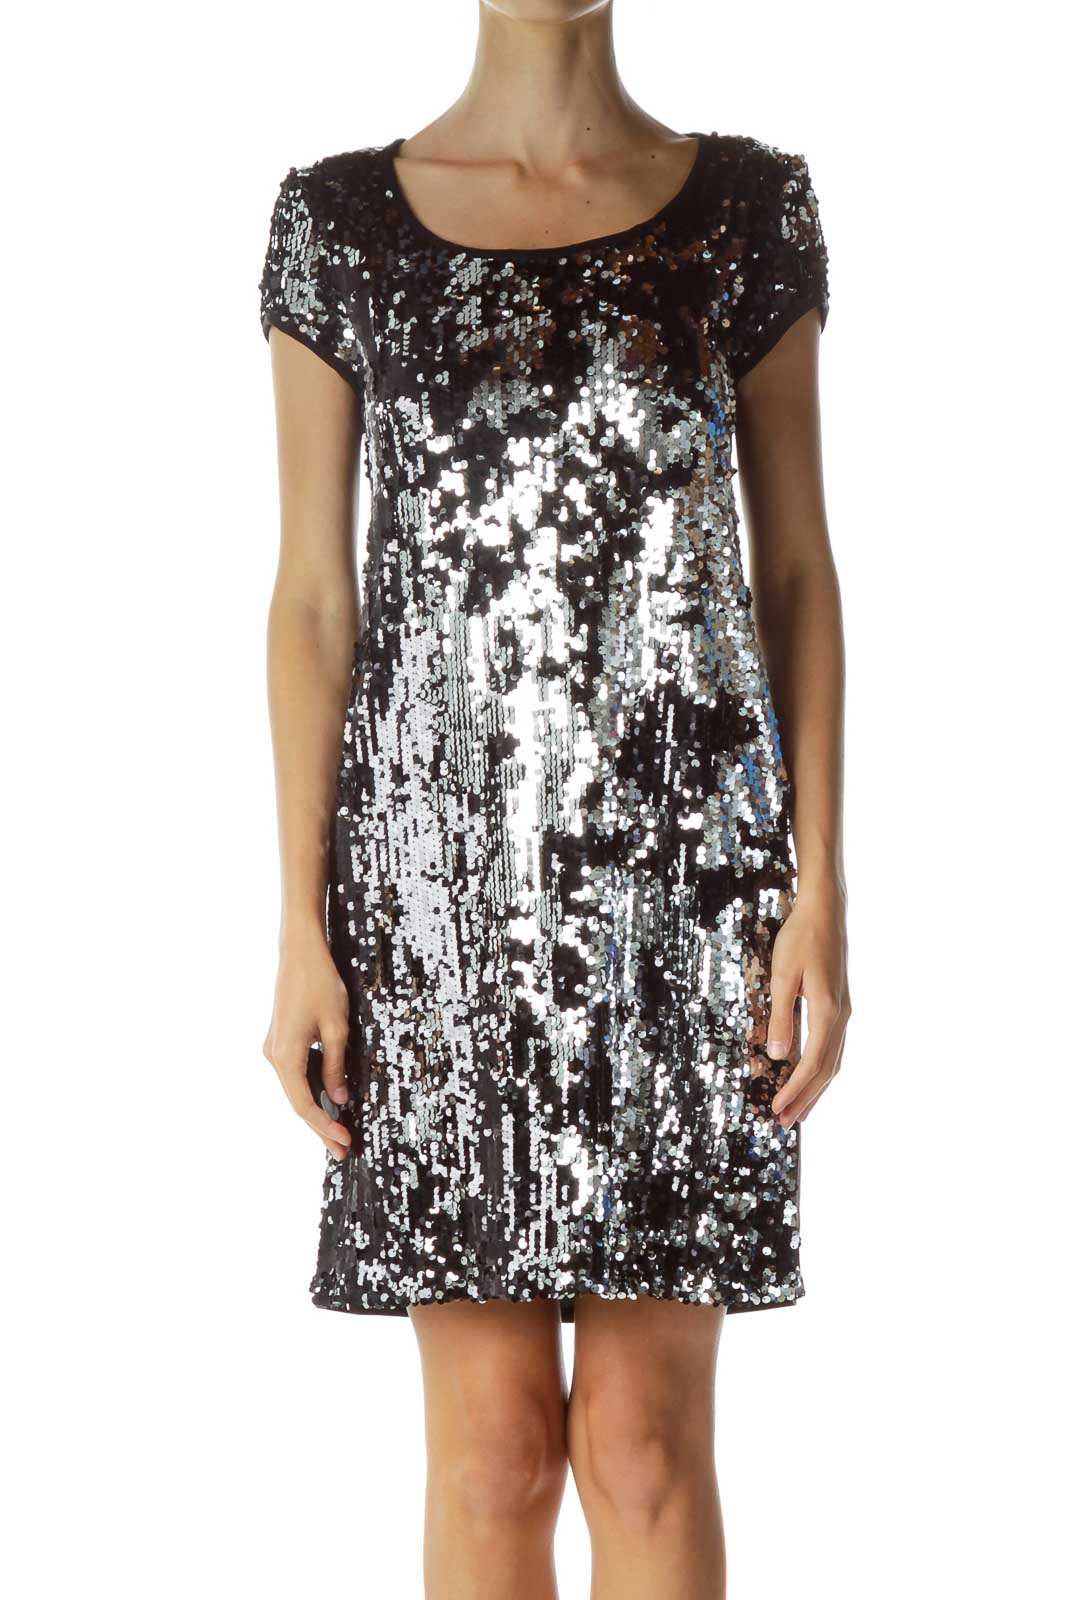 Black Silver Sequined Cocktail Dress Front